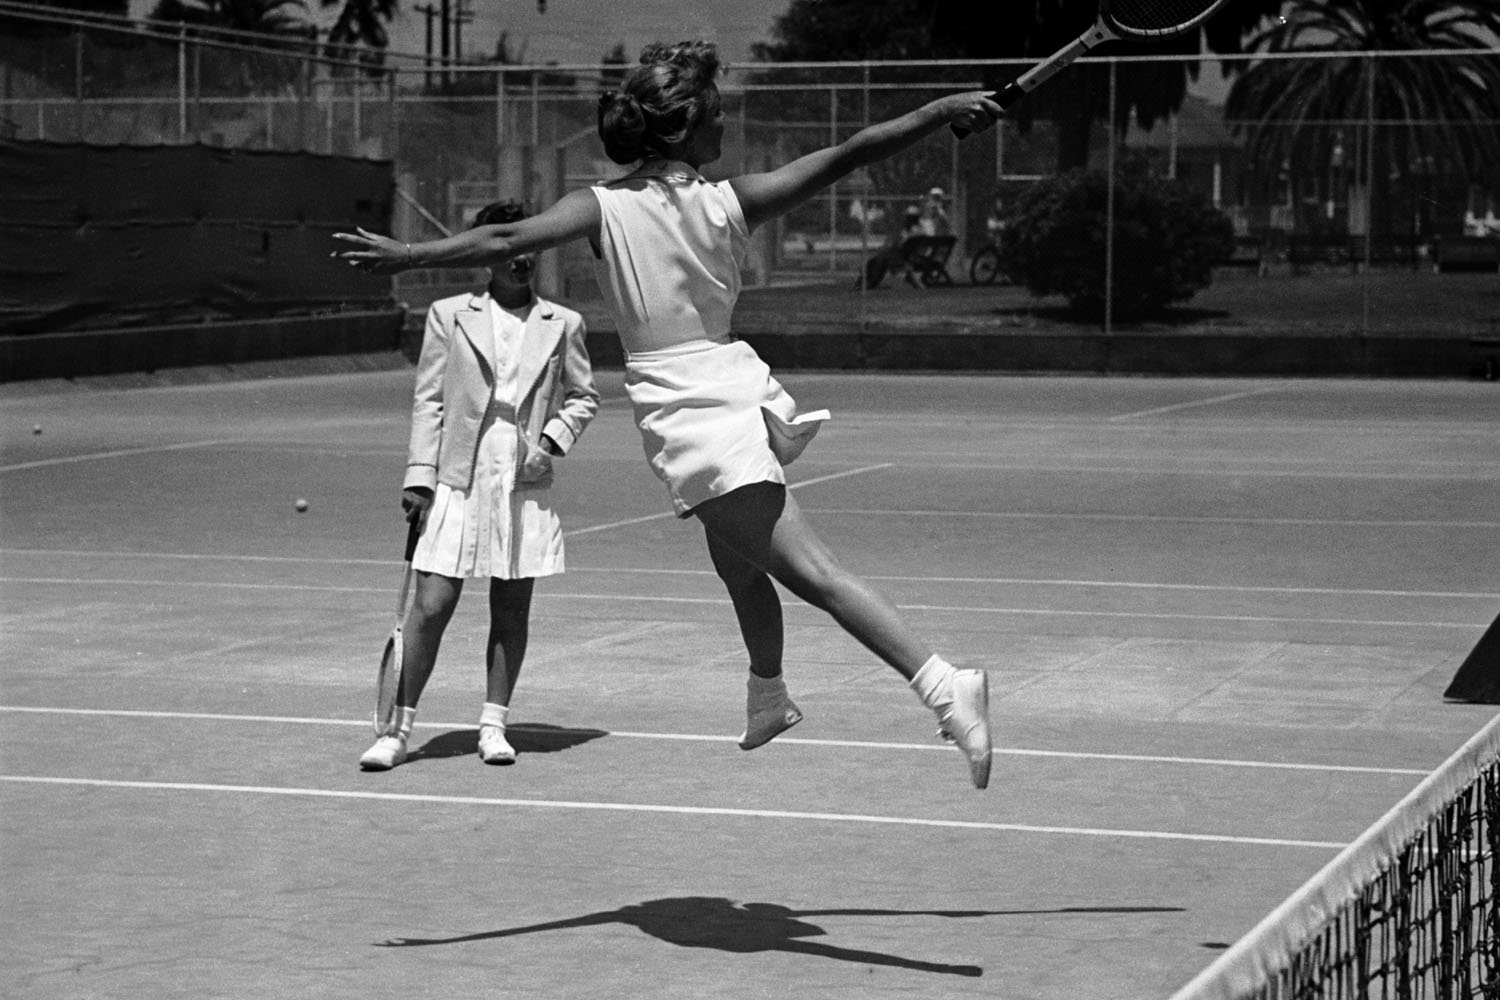 A group of professional women training for a tennis competition in Santa Monica, California in June, 1950.